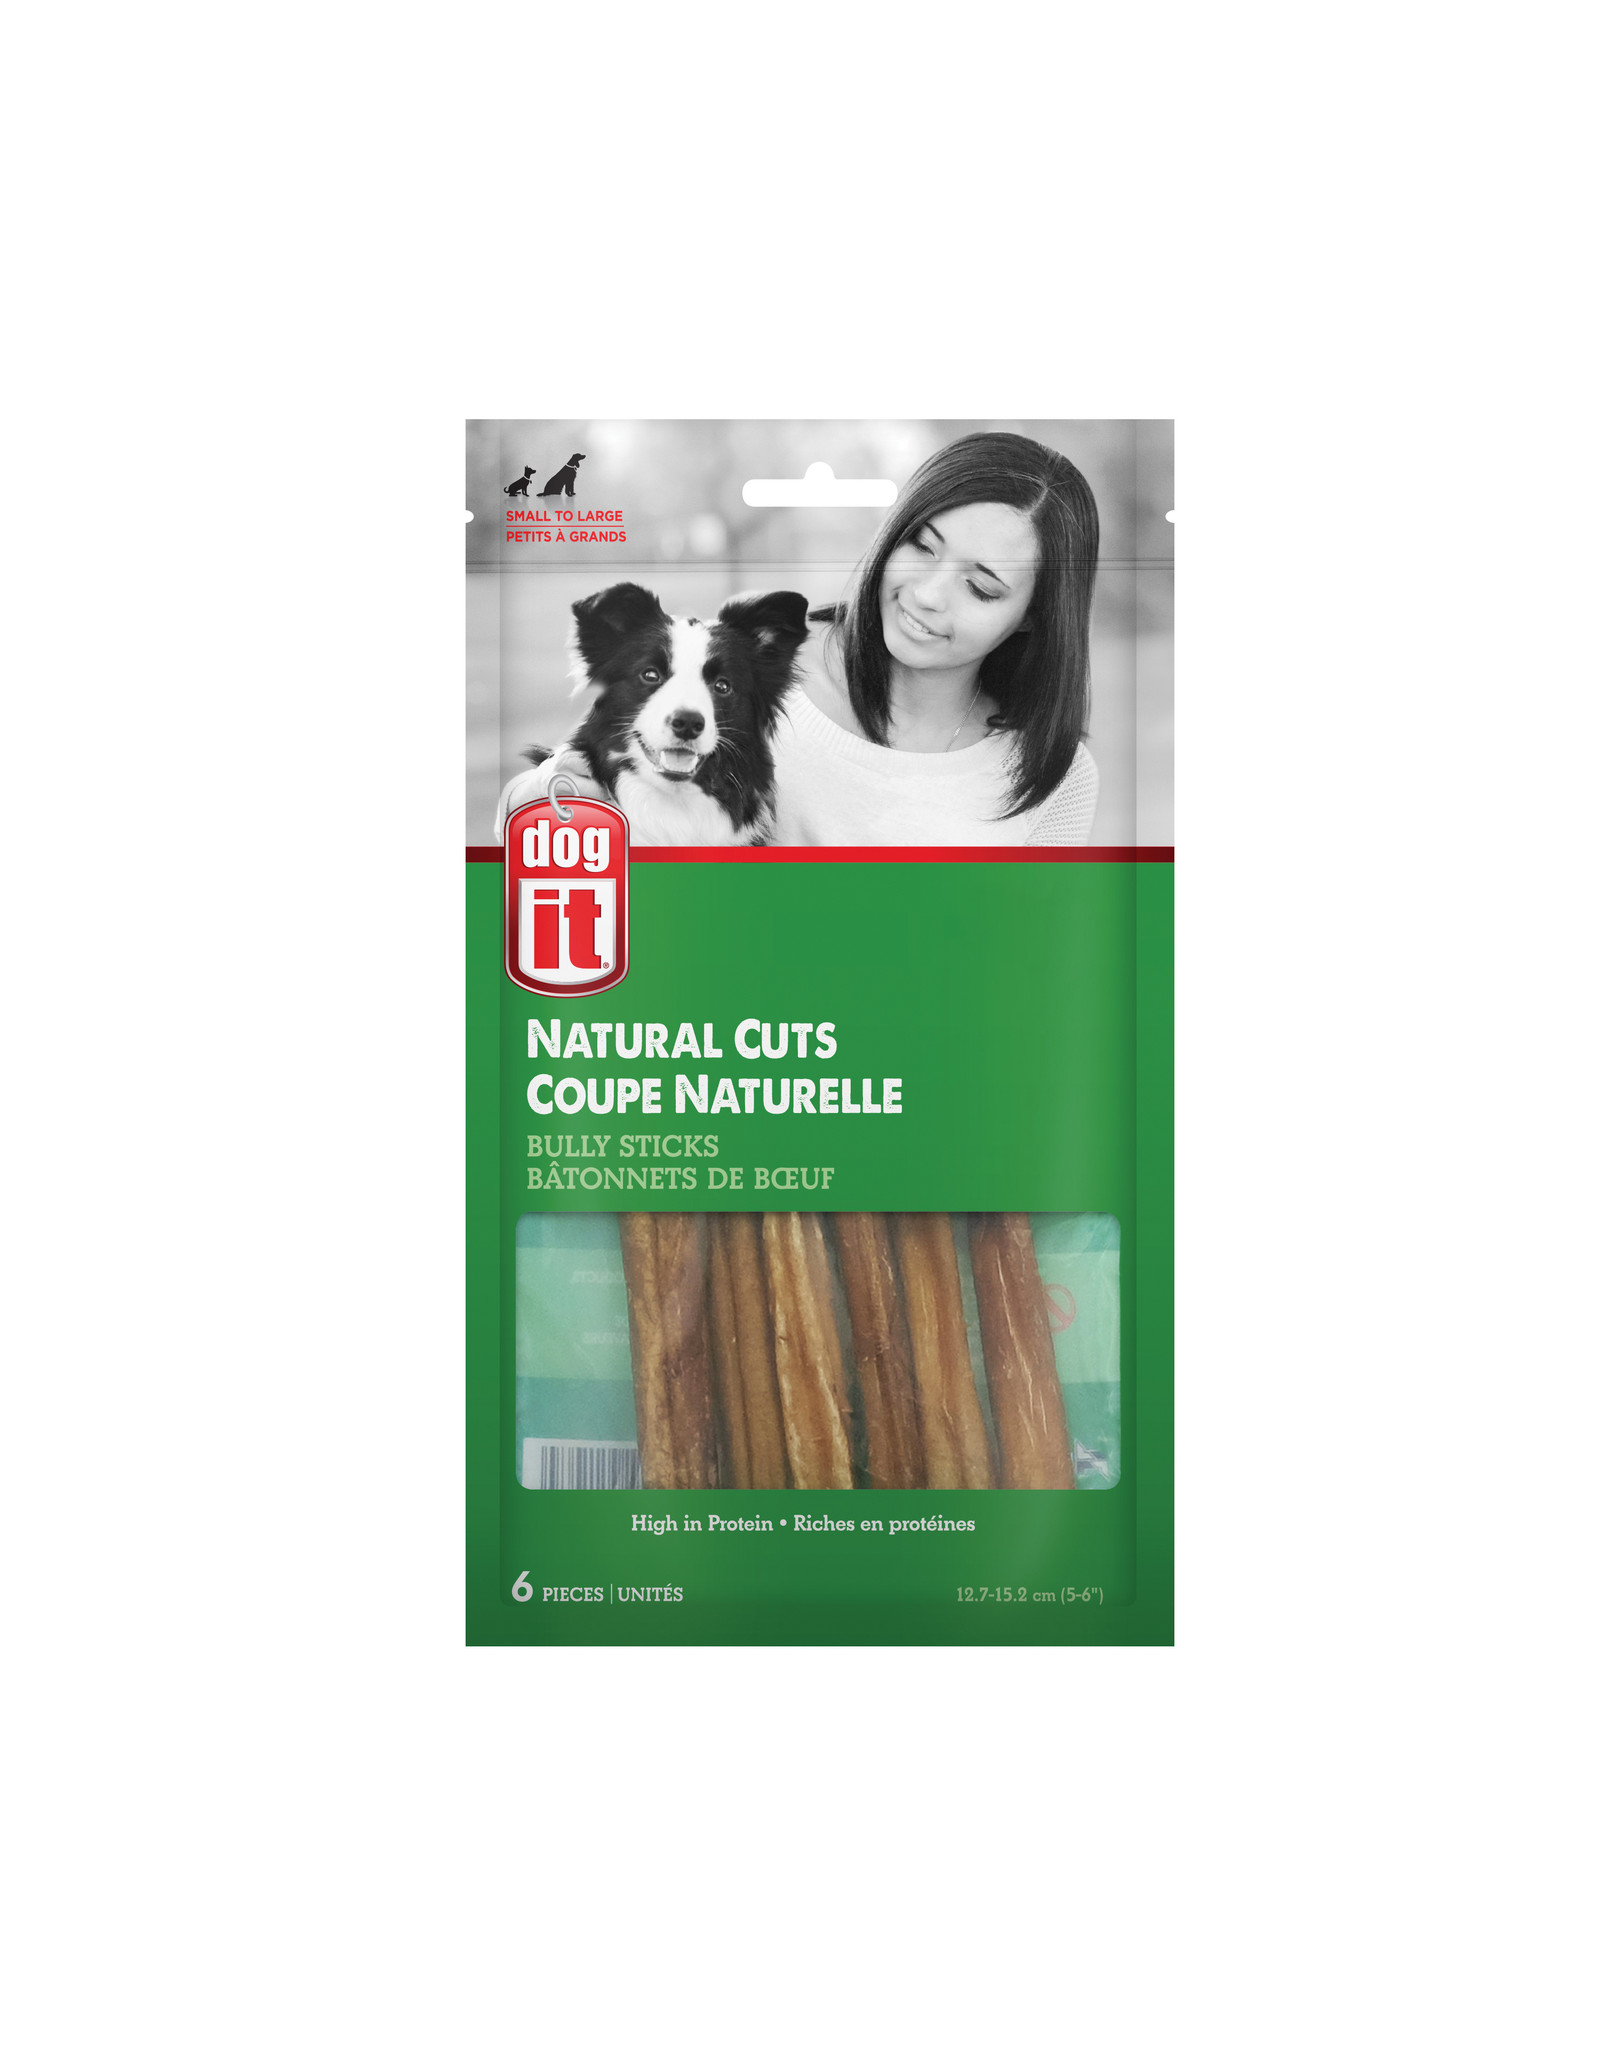 DO - Dogit Dogit Natural Cuts Bully Sticks - Straight - 12.7-15.2 cm (5-6in) - 6 pack